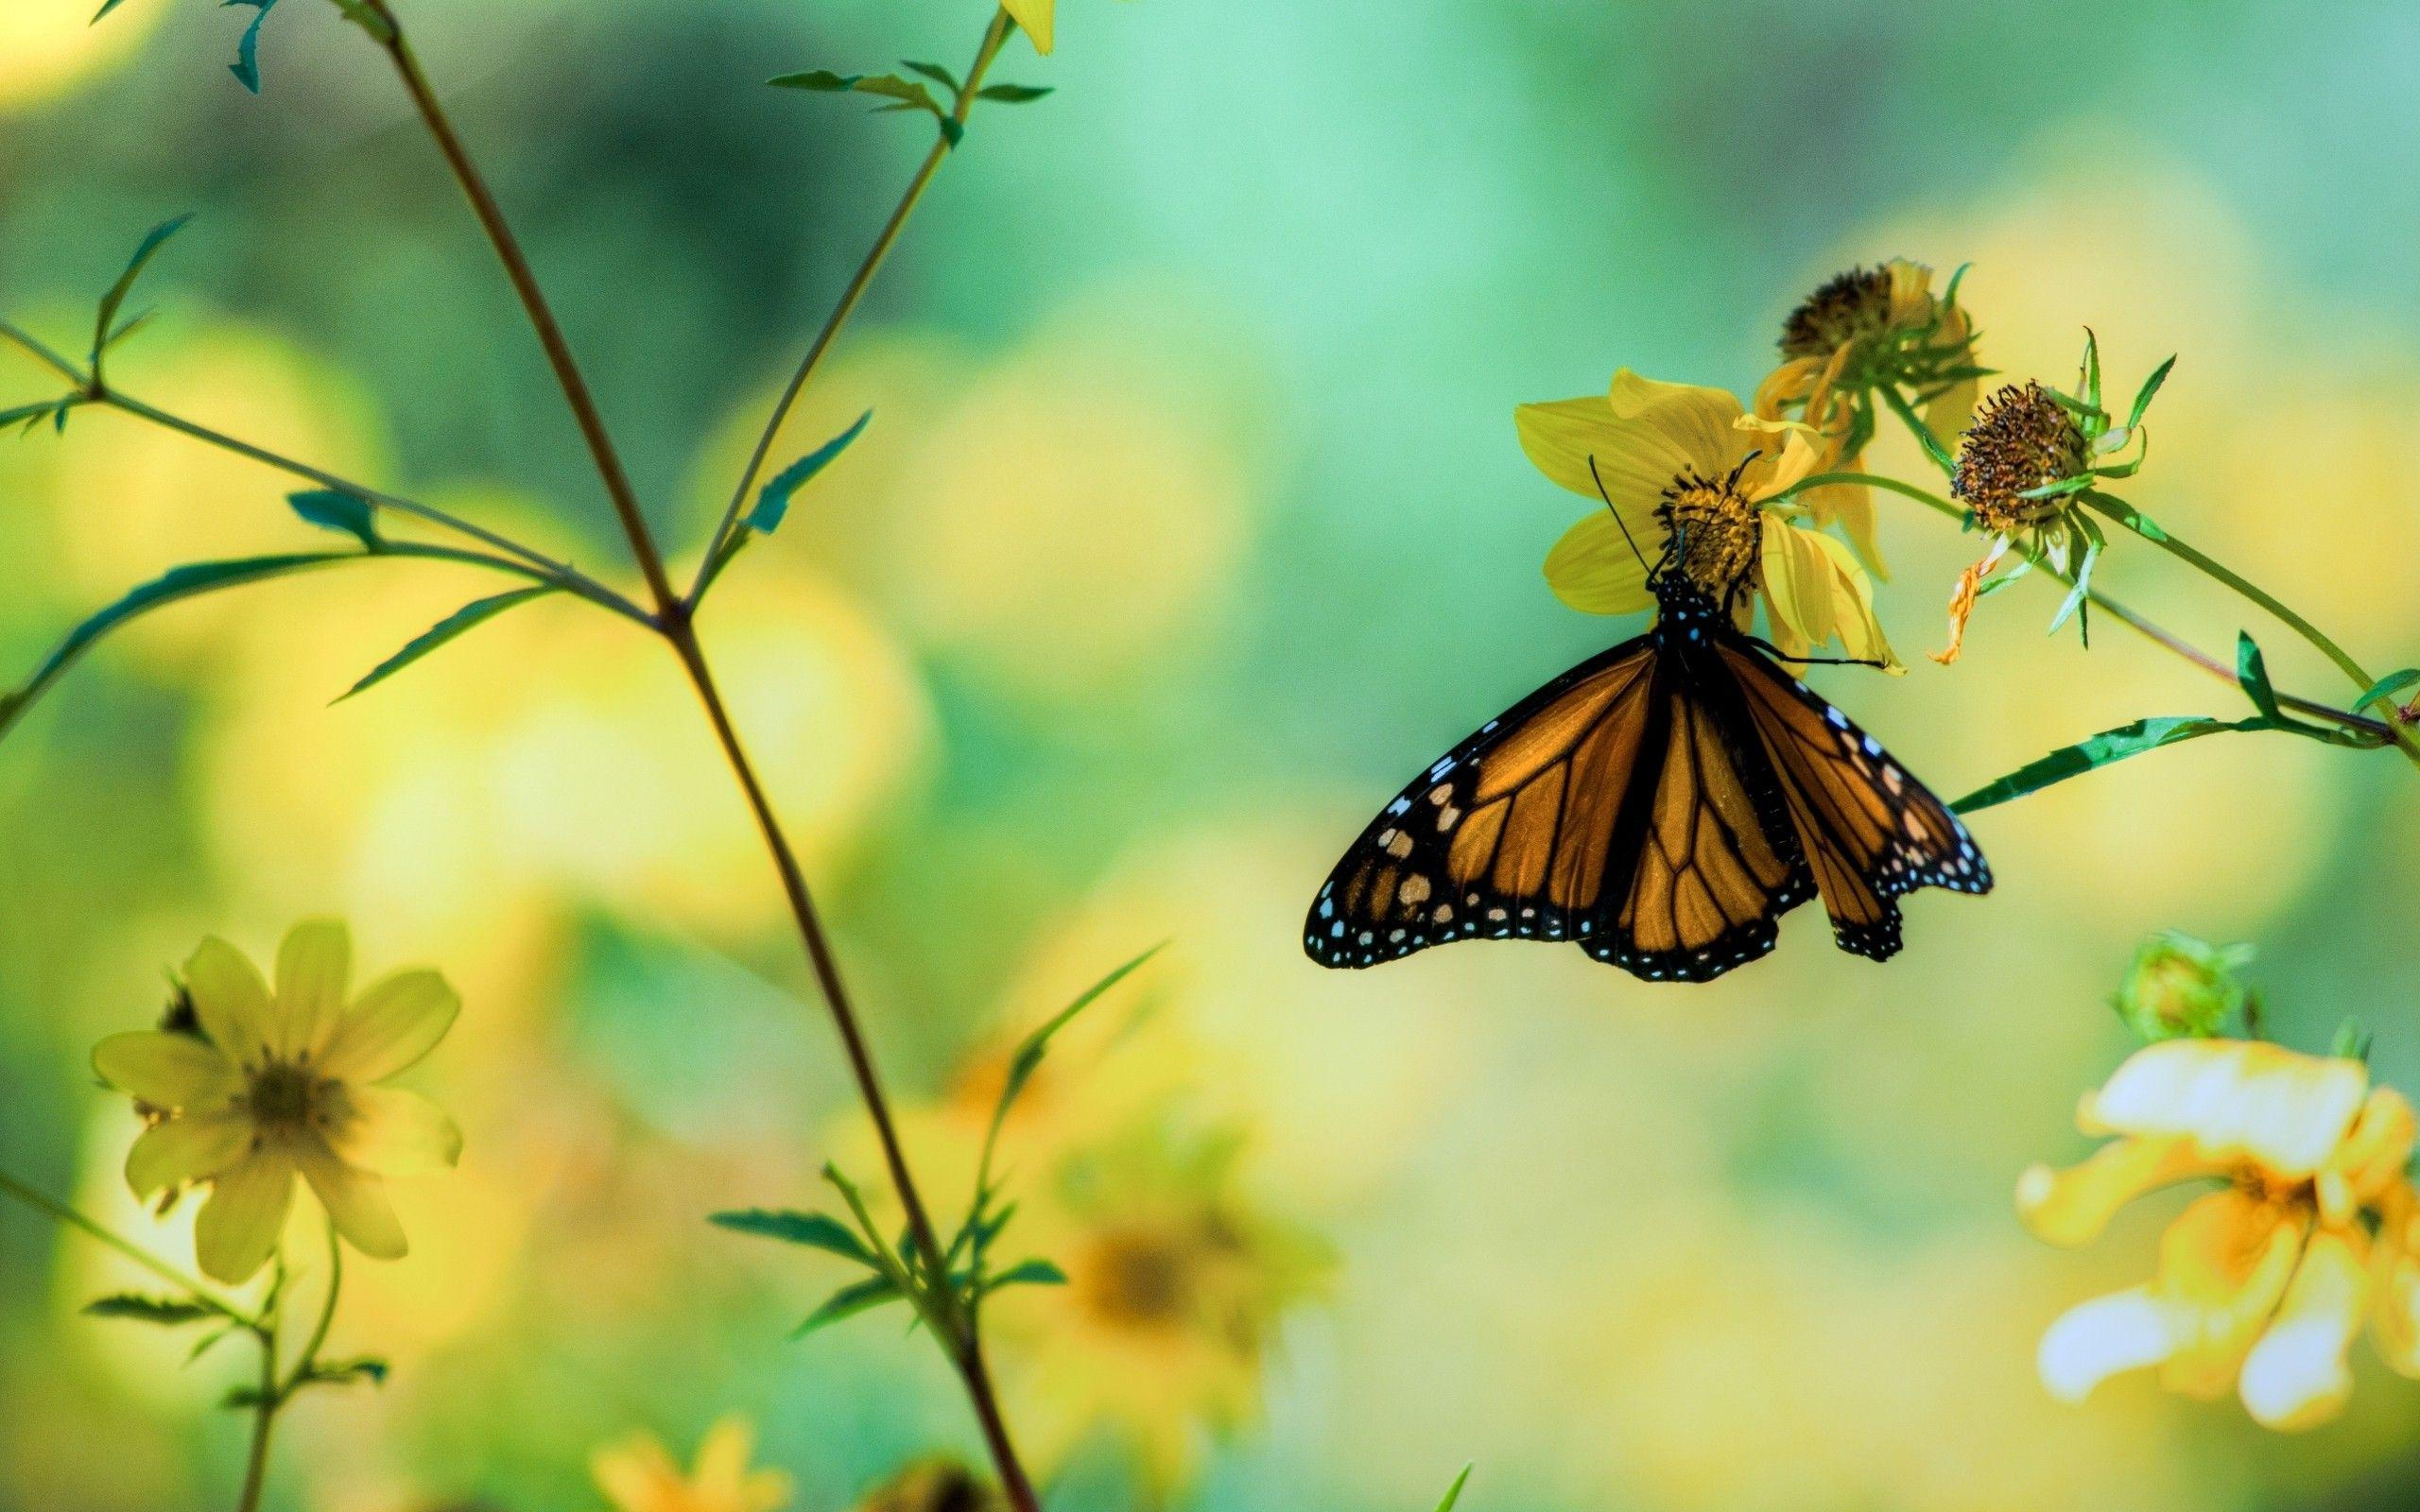 Butterflies Wallpapers Hd Download: Butterfly Wallpapers HD